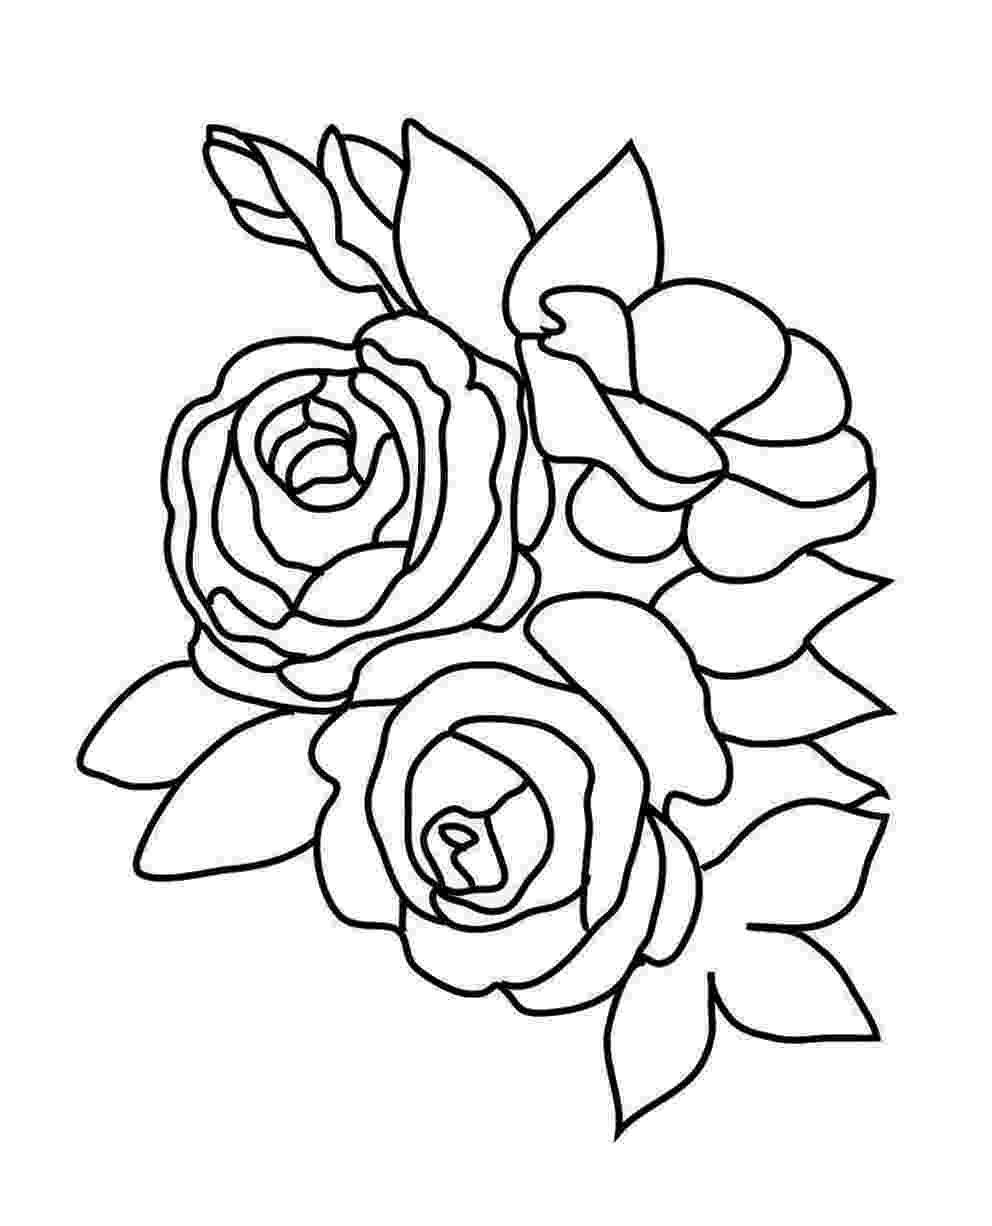 rose print out tattoos book 2510 free printable tattoo stencils rose rose out print